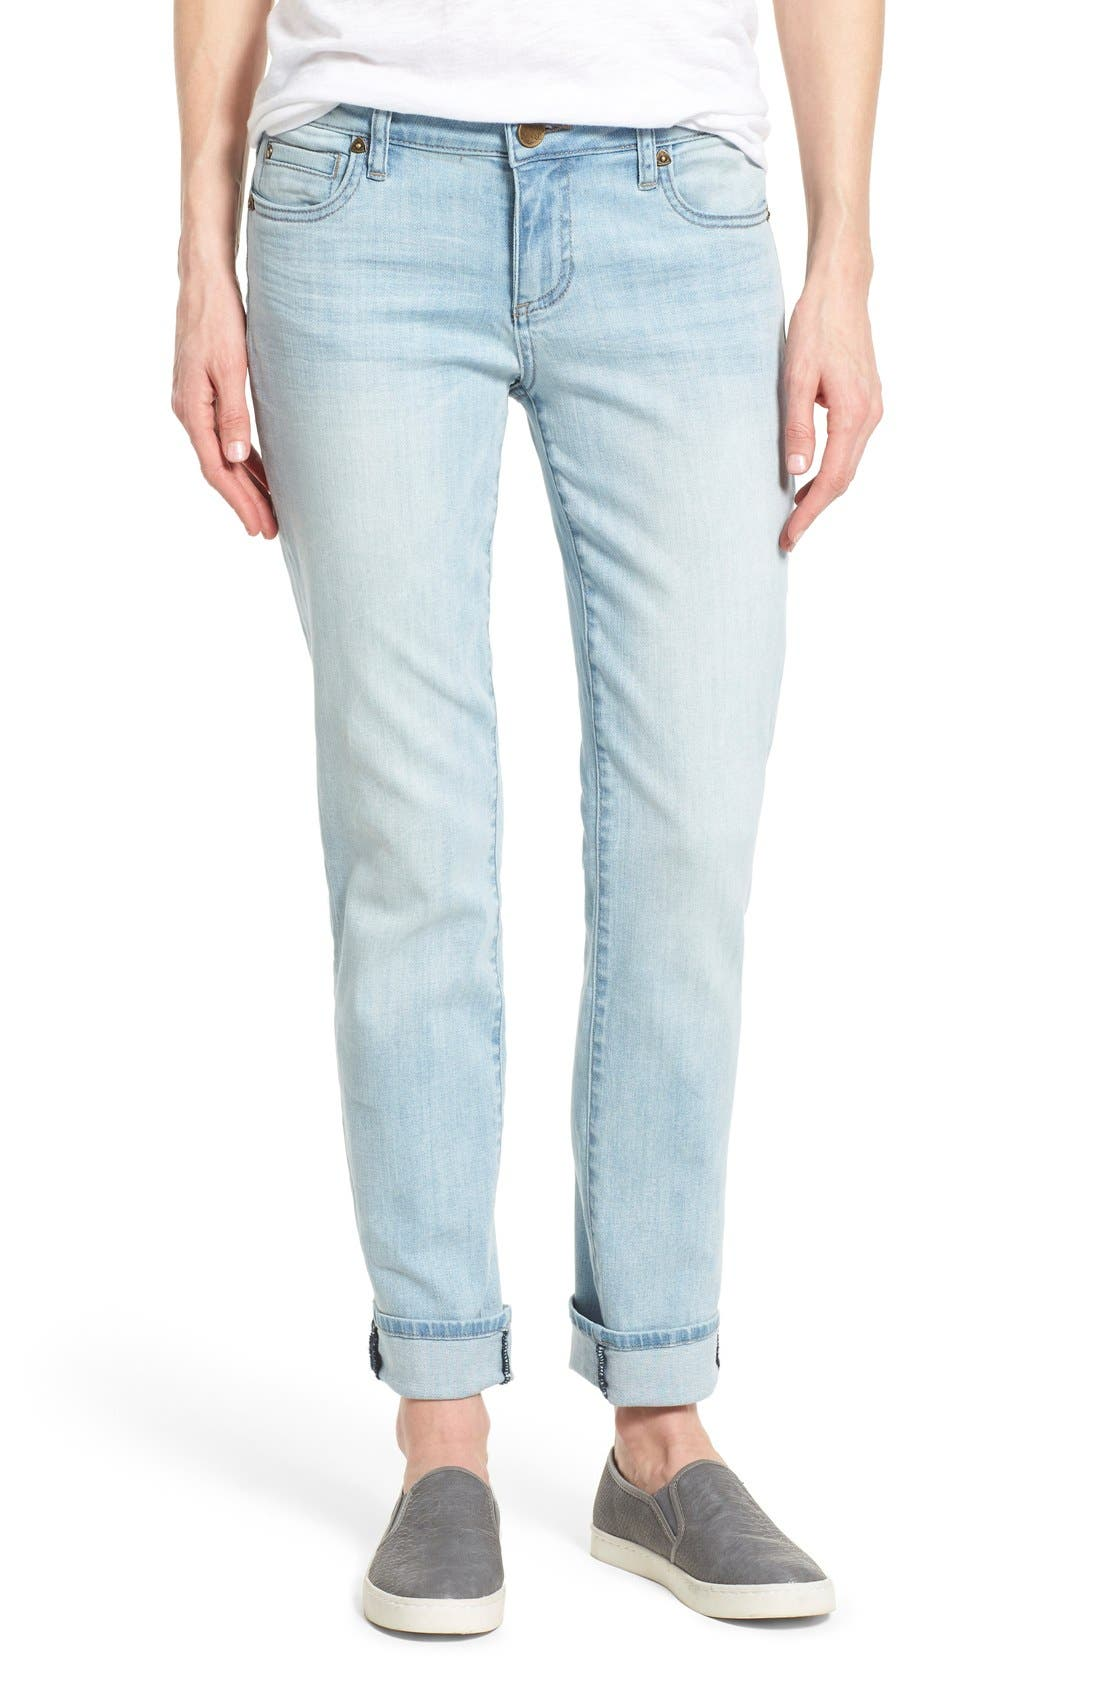 Alternate Image 1 Selected - KUT from the Kloth 'Catherine' Stretch Slim Boyfriend Jeans (Artistic)